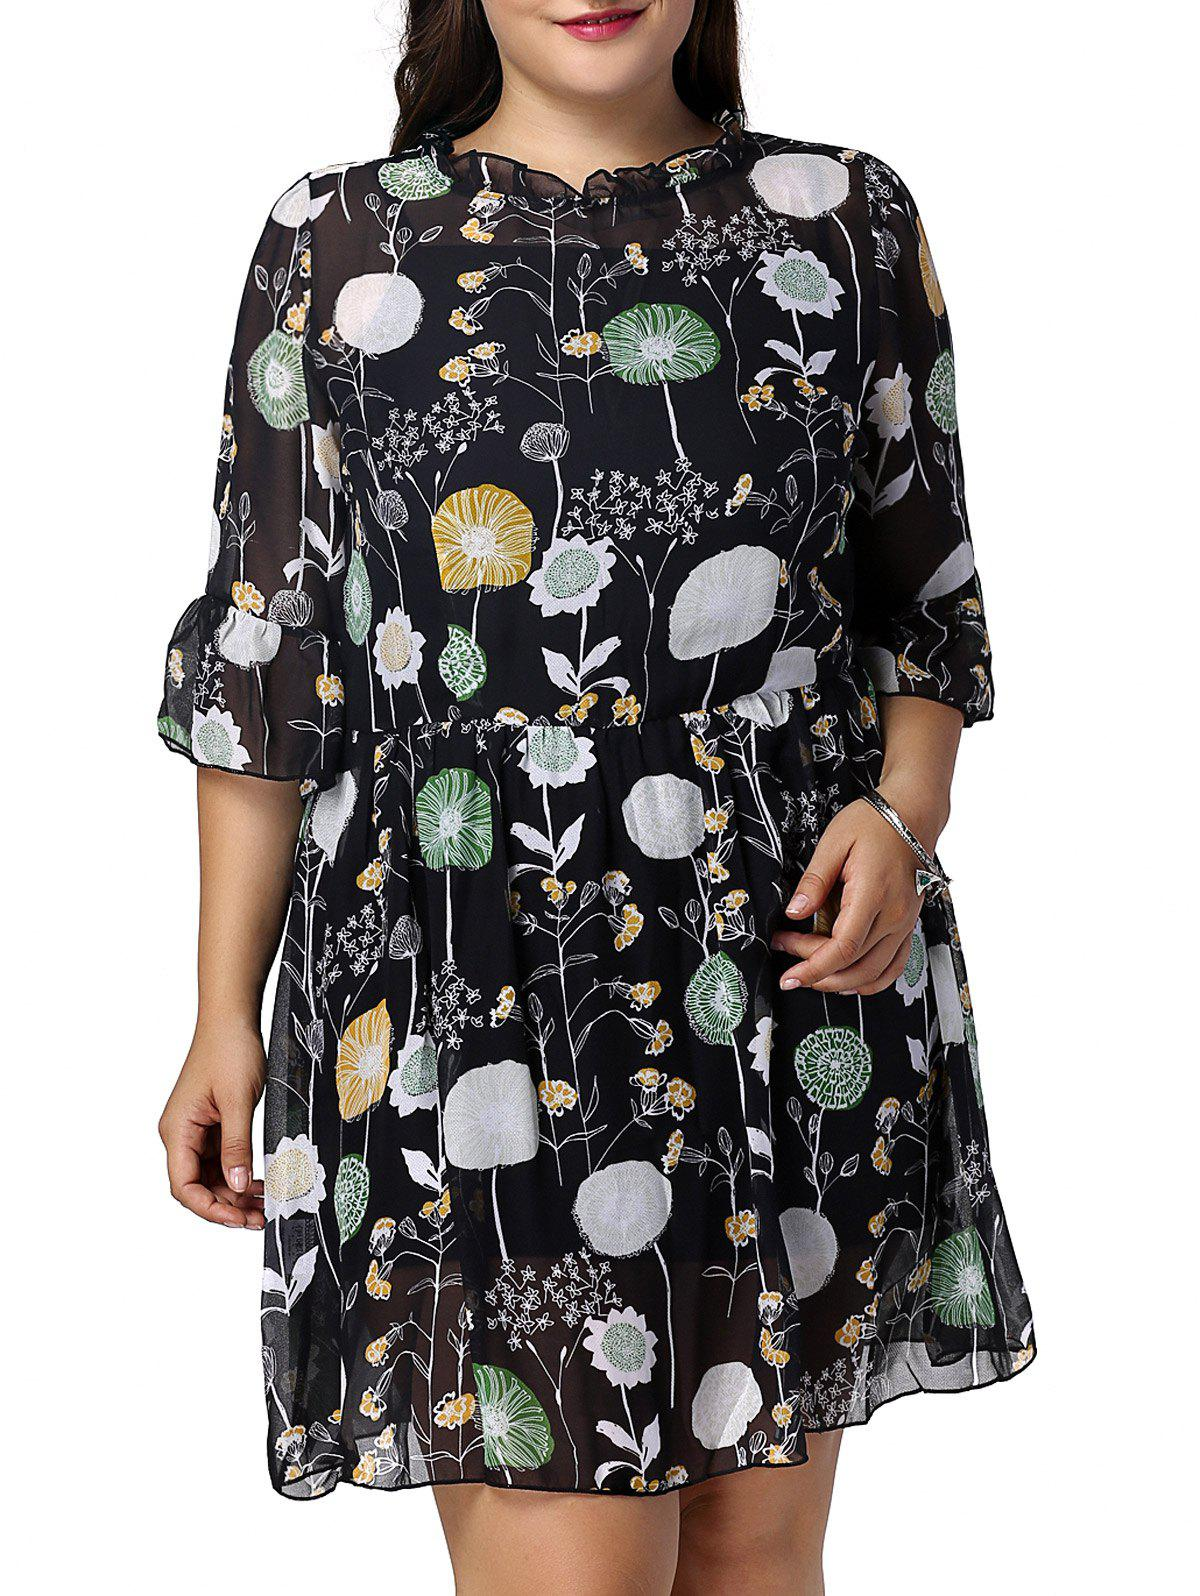 Sweet Plus Size Floral Print Flare Sleeve Women's Dress